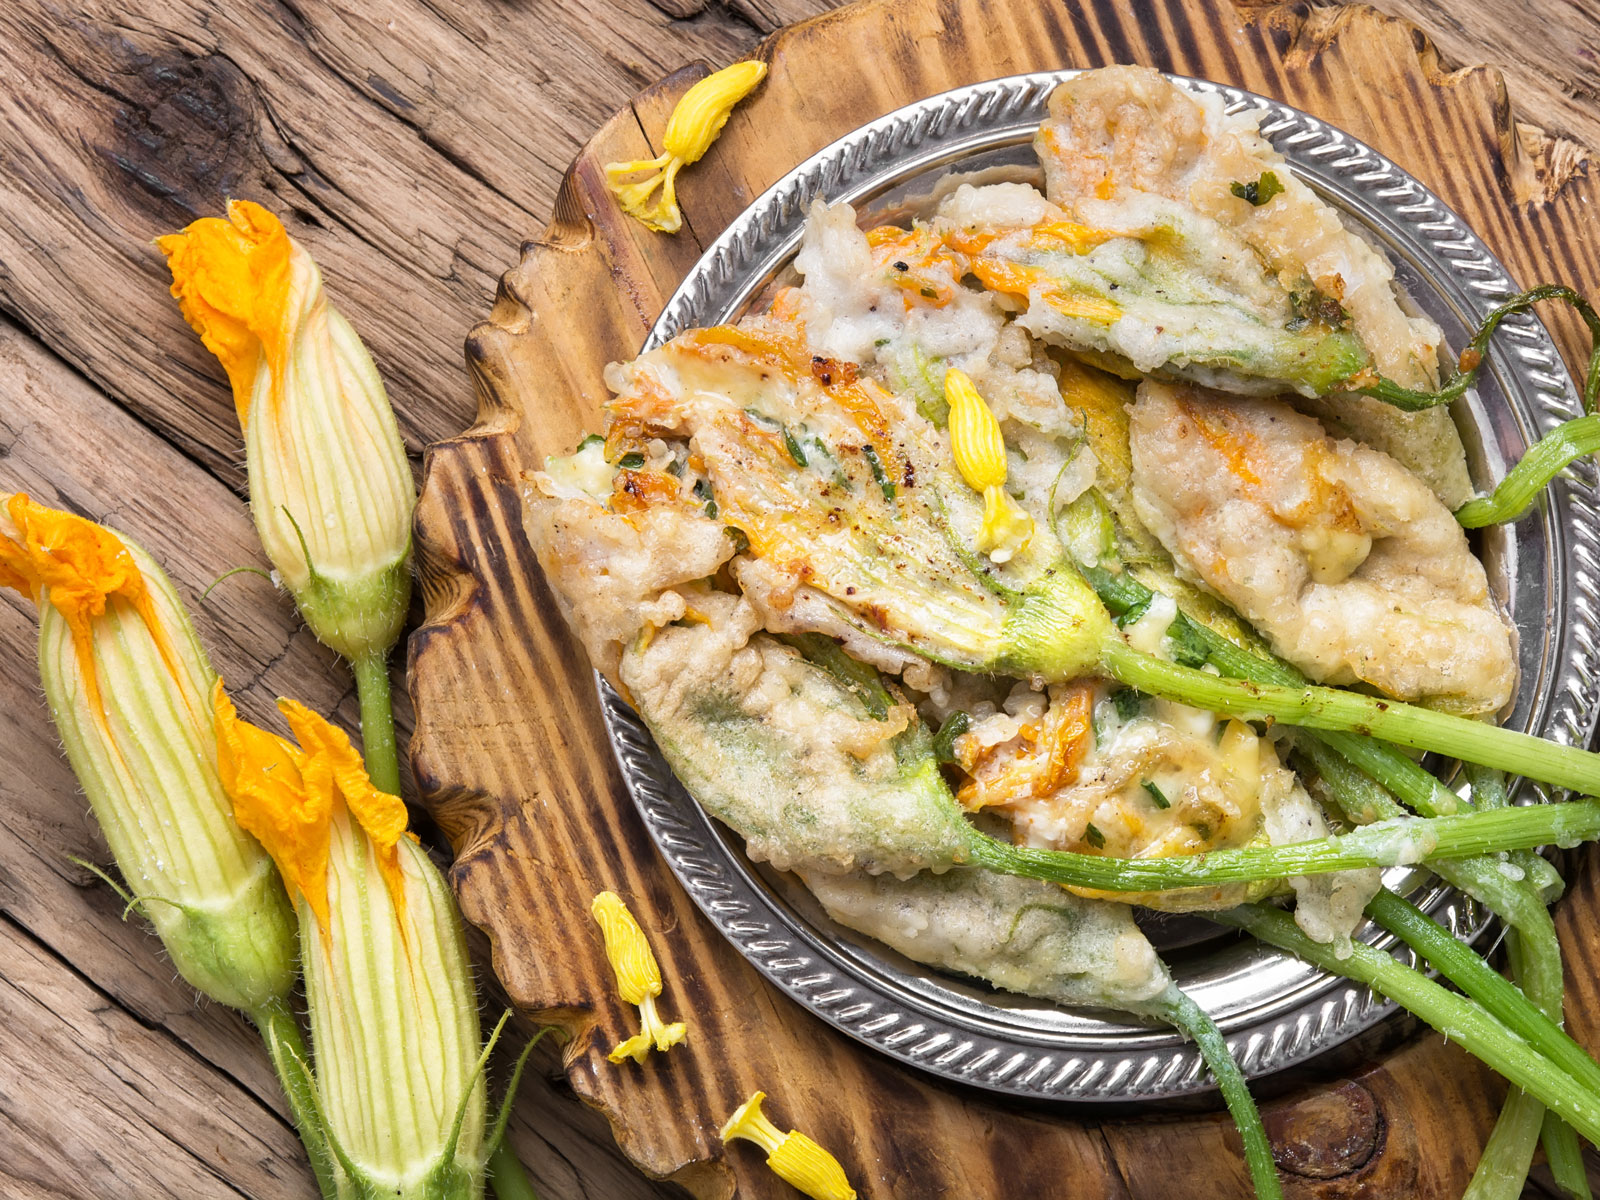 Fried zucchini flowers.